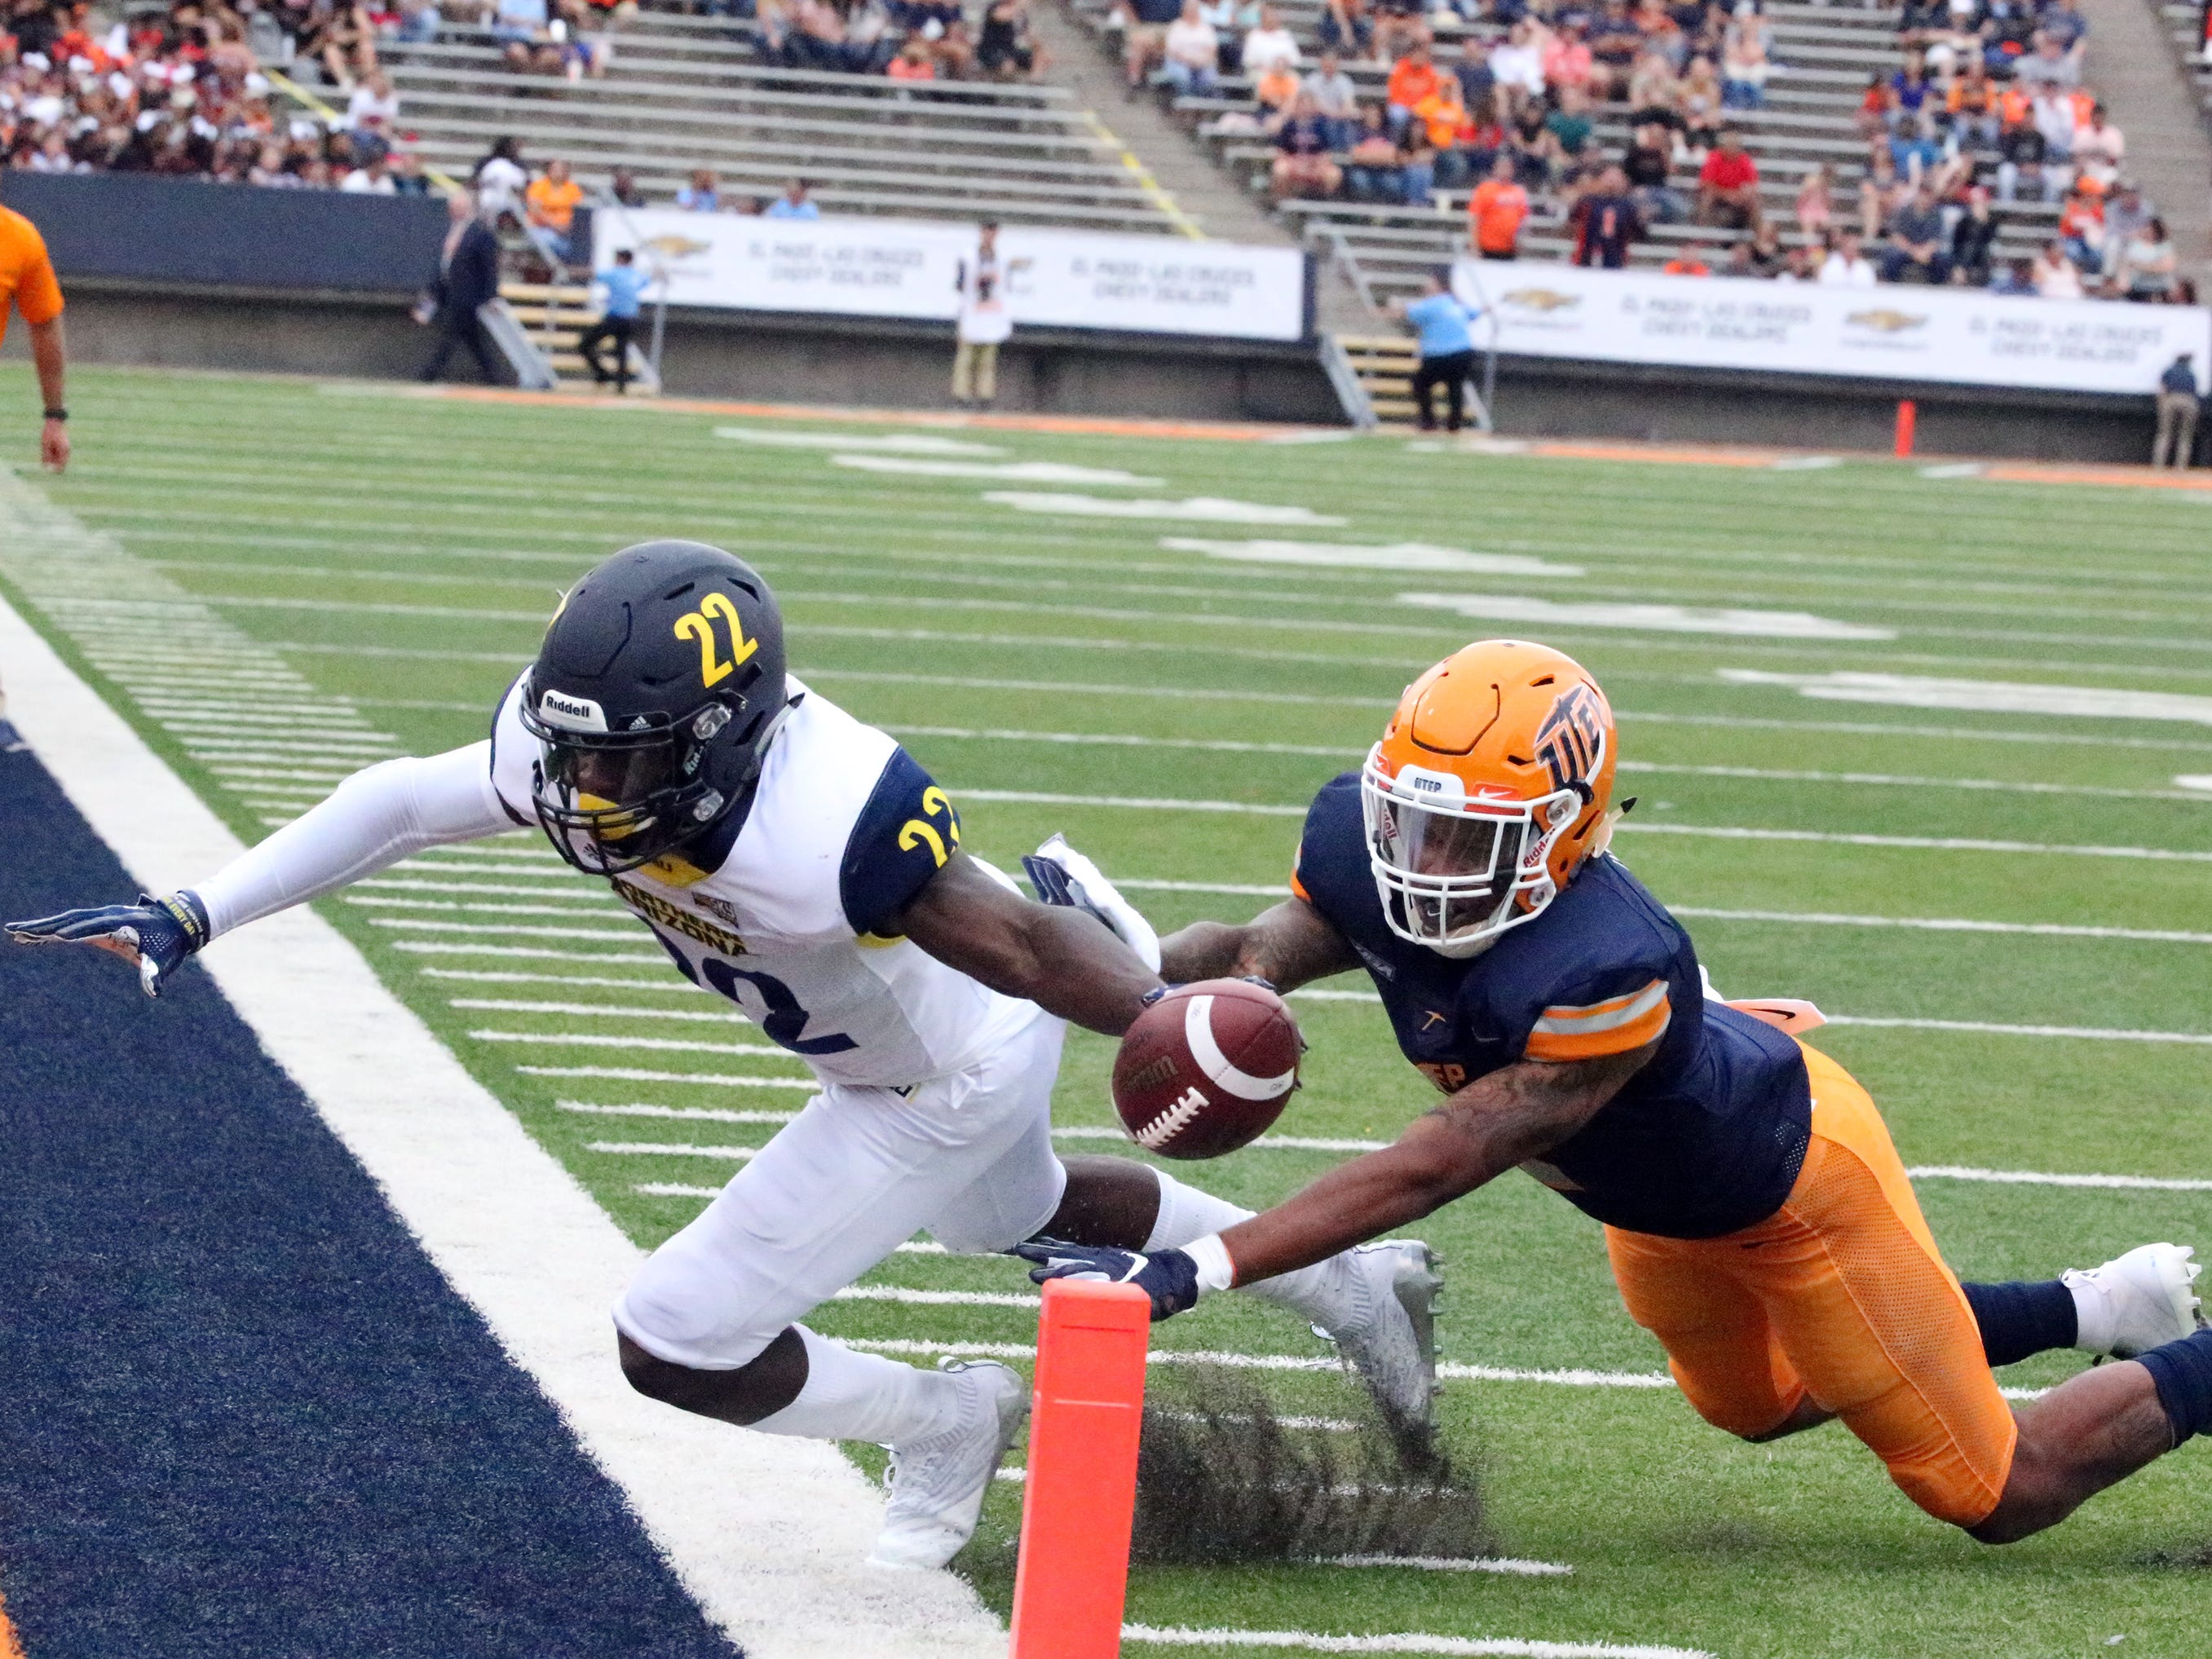 Joe Logan, 22, of Northern Arizona steps out of bounds just as he carries the ball over the hash mark Saturday against UTEP. The touchdown call was recalled after review but the Lumberjacks scored on the next play.